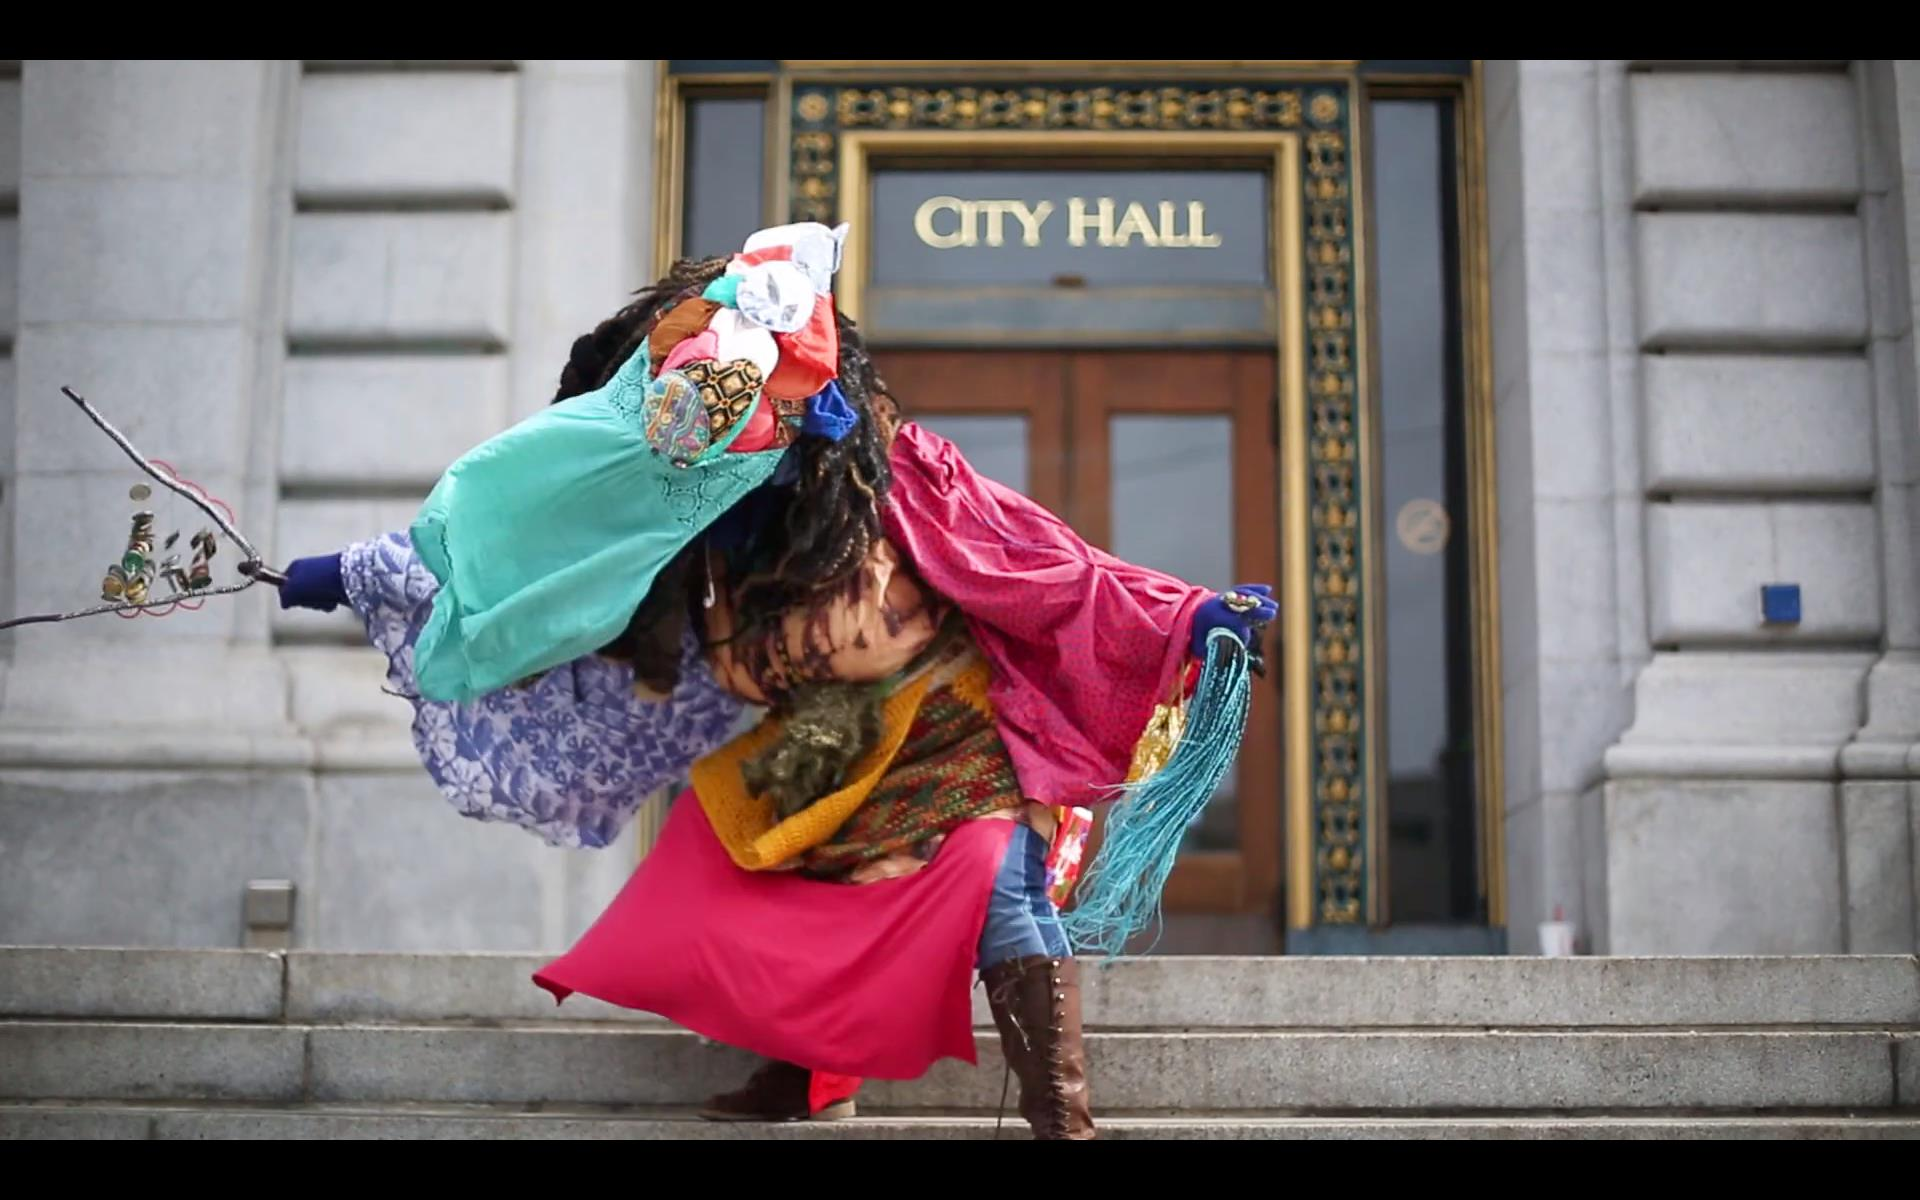 image of costumed healer on the steps of City Hall.